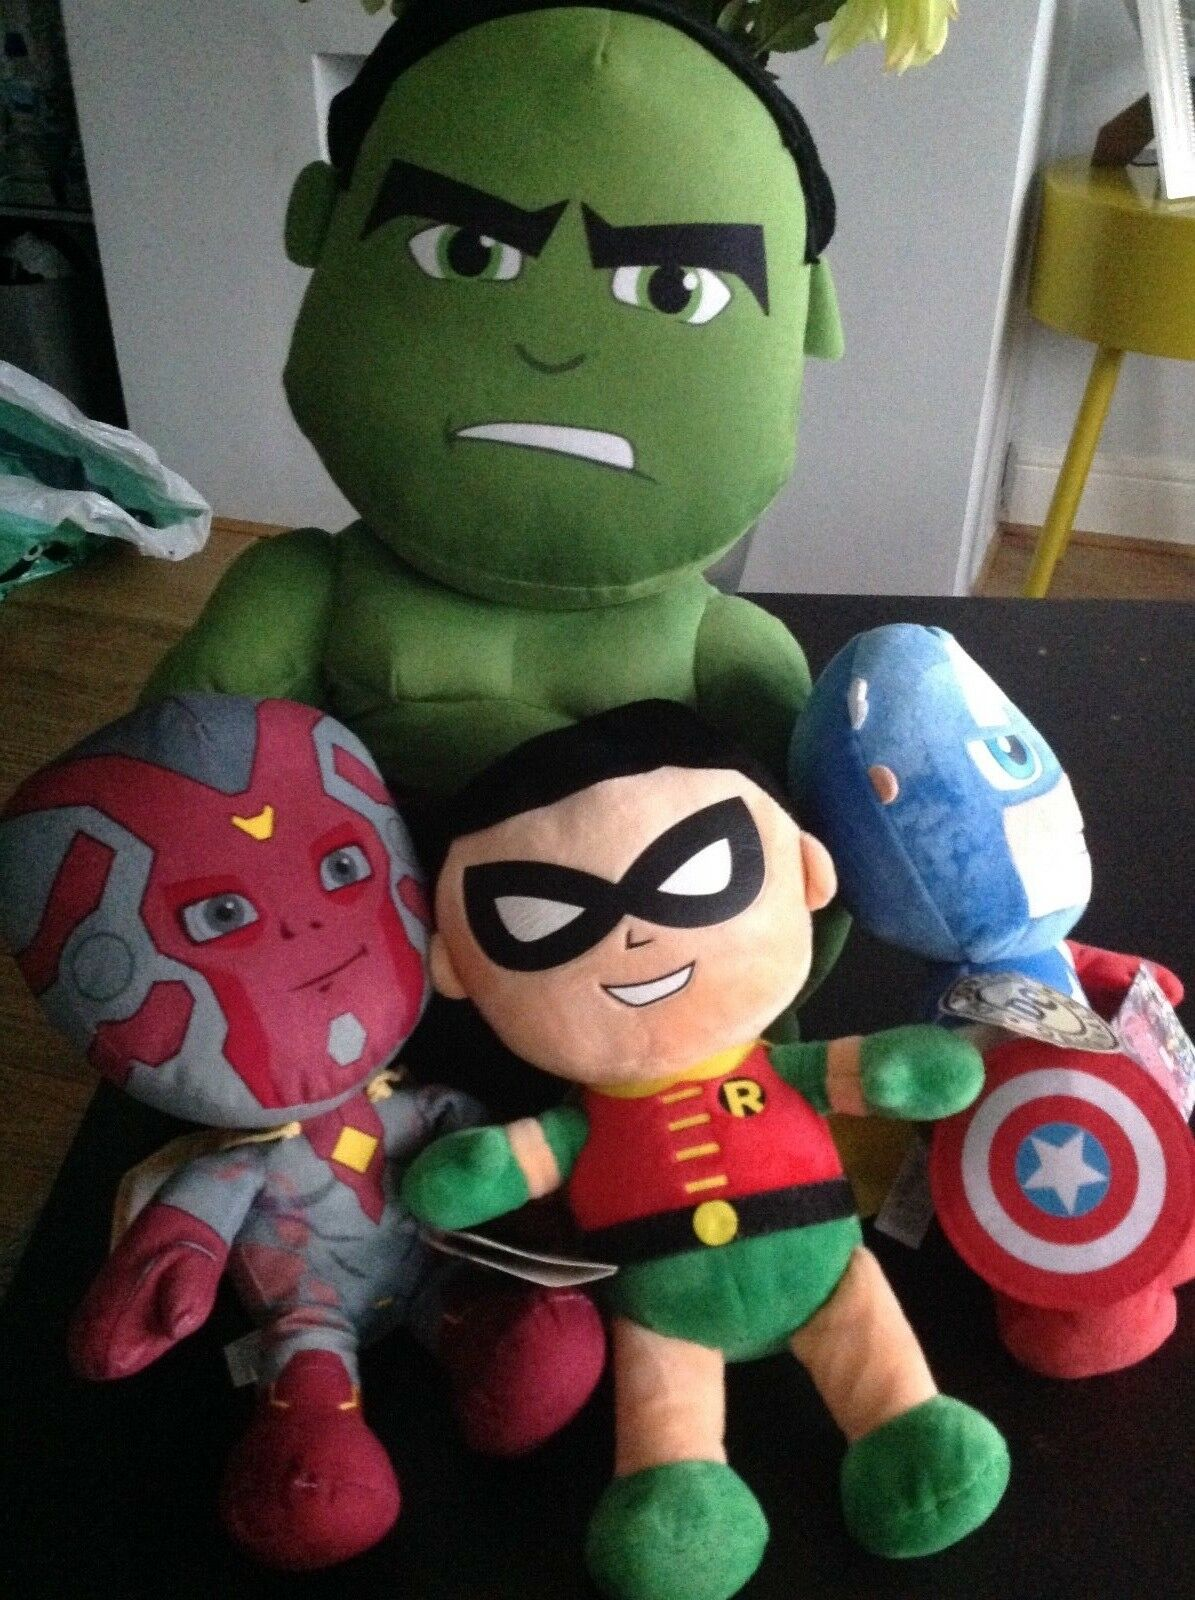 NEW OFFICIAL MARVEL AVENGERS HULK VISION CAPTAIN AMERICA ROBIN PLUSH SOFT TOY